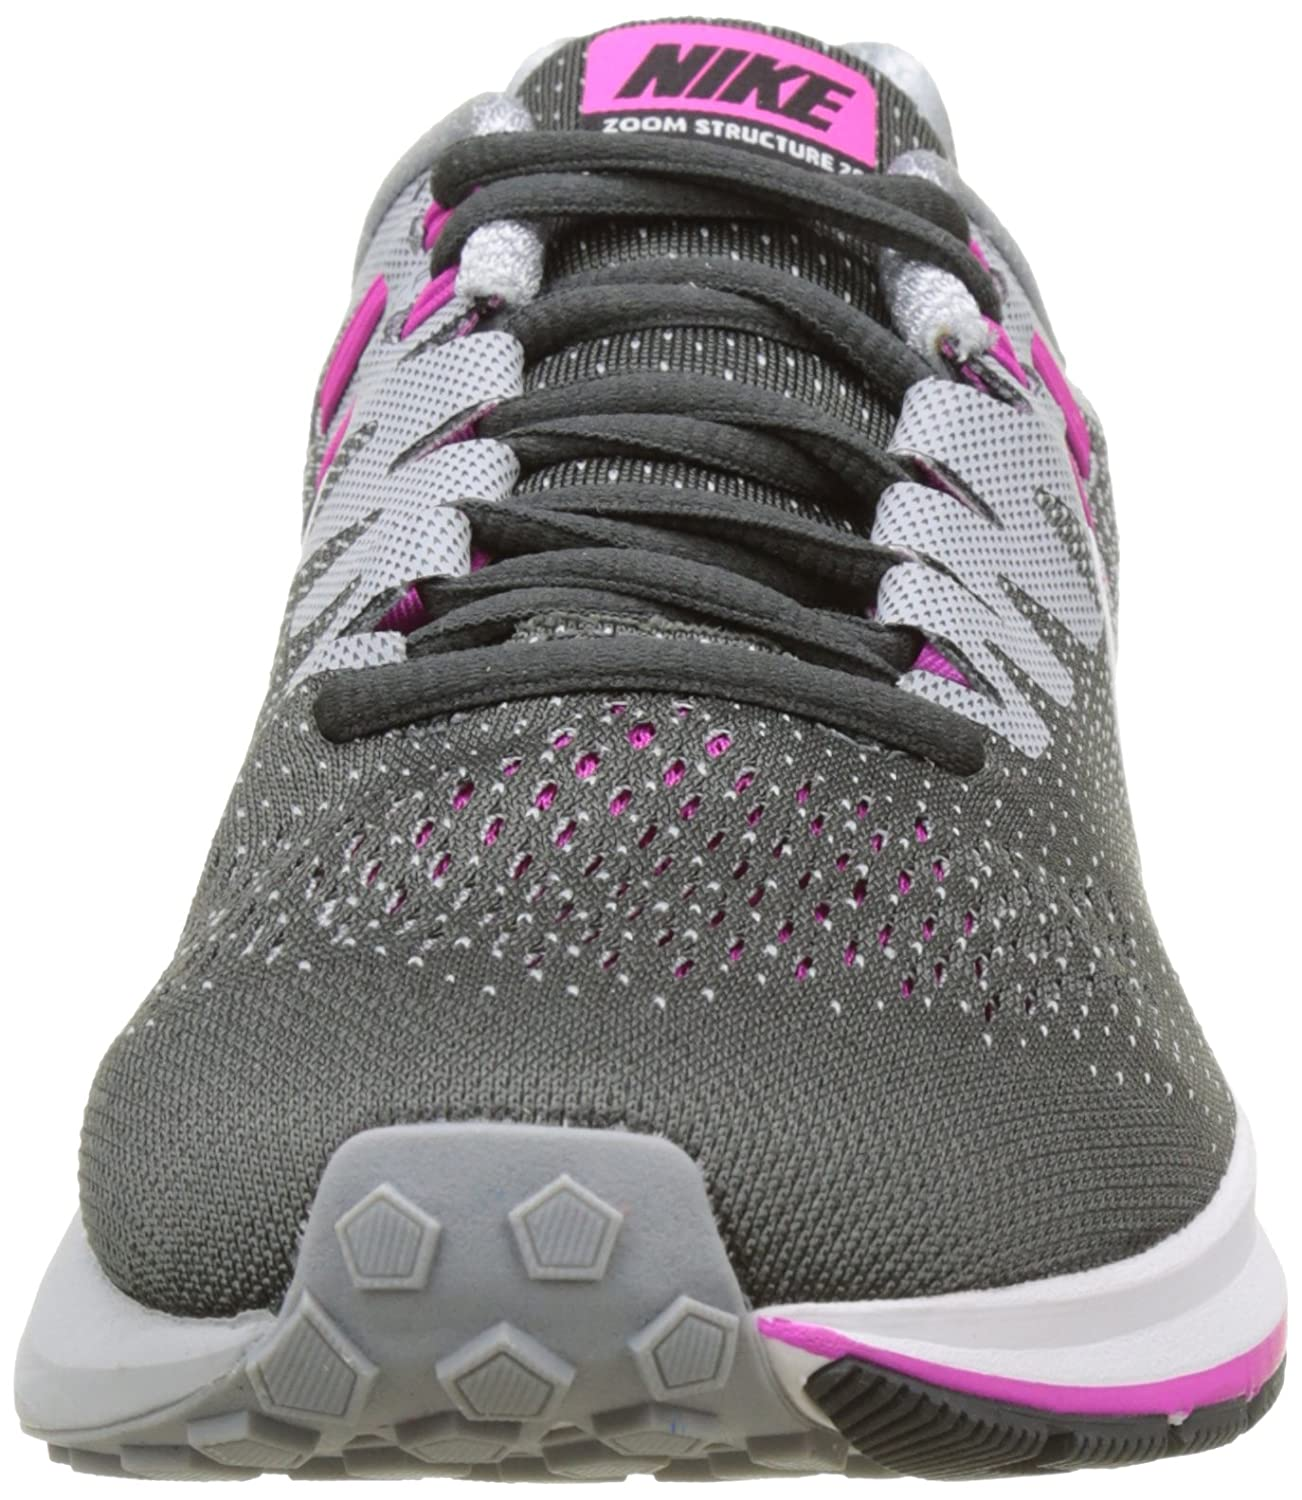 san francisco 90721 ca234 Amazon.com   Nike Women  s WMNS Air Zoom Structure 20 Running Shoes   Road  Running